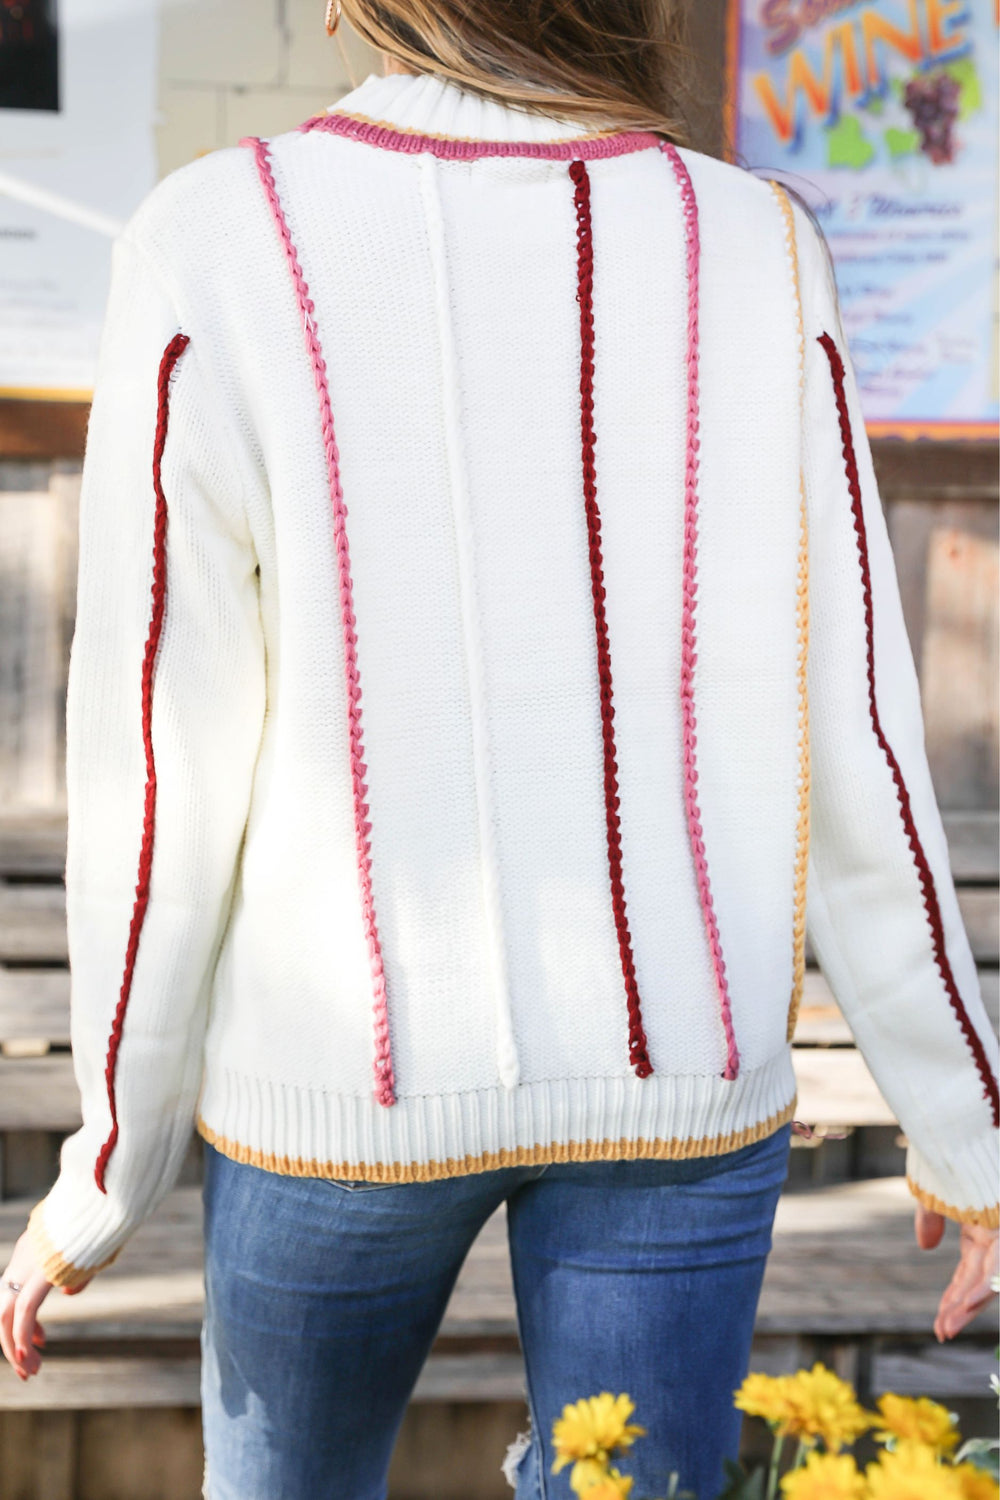 The Slice of Heaven Sweater Inspired by Pam Carper x Kendra Scott